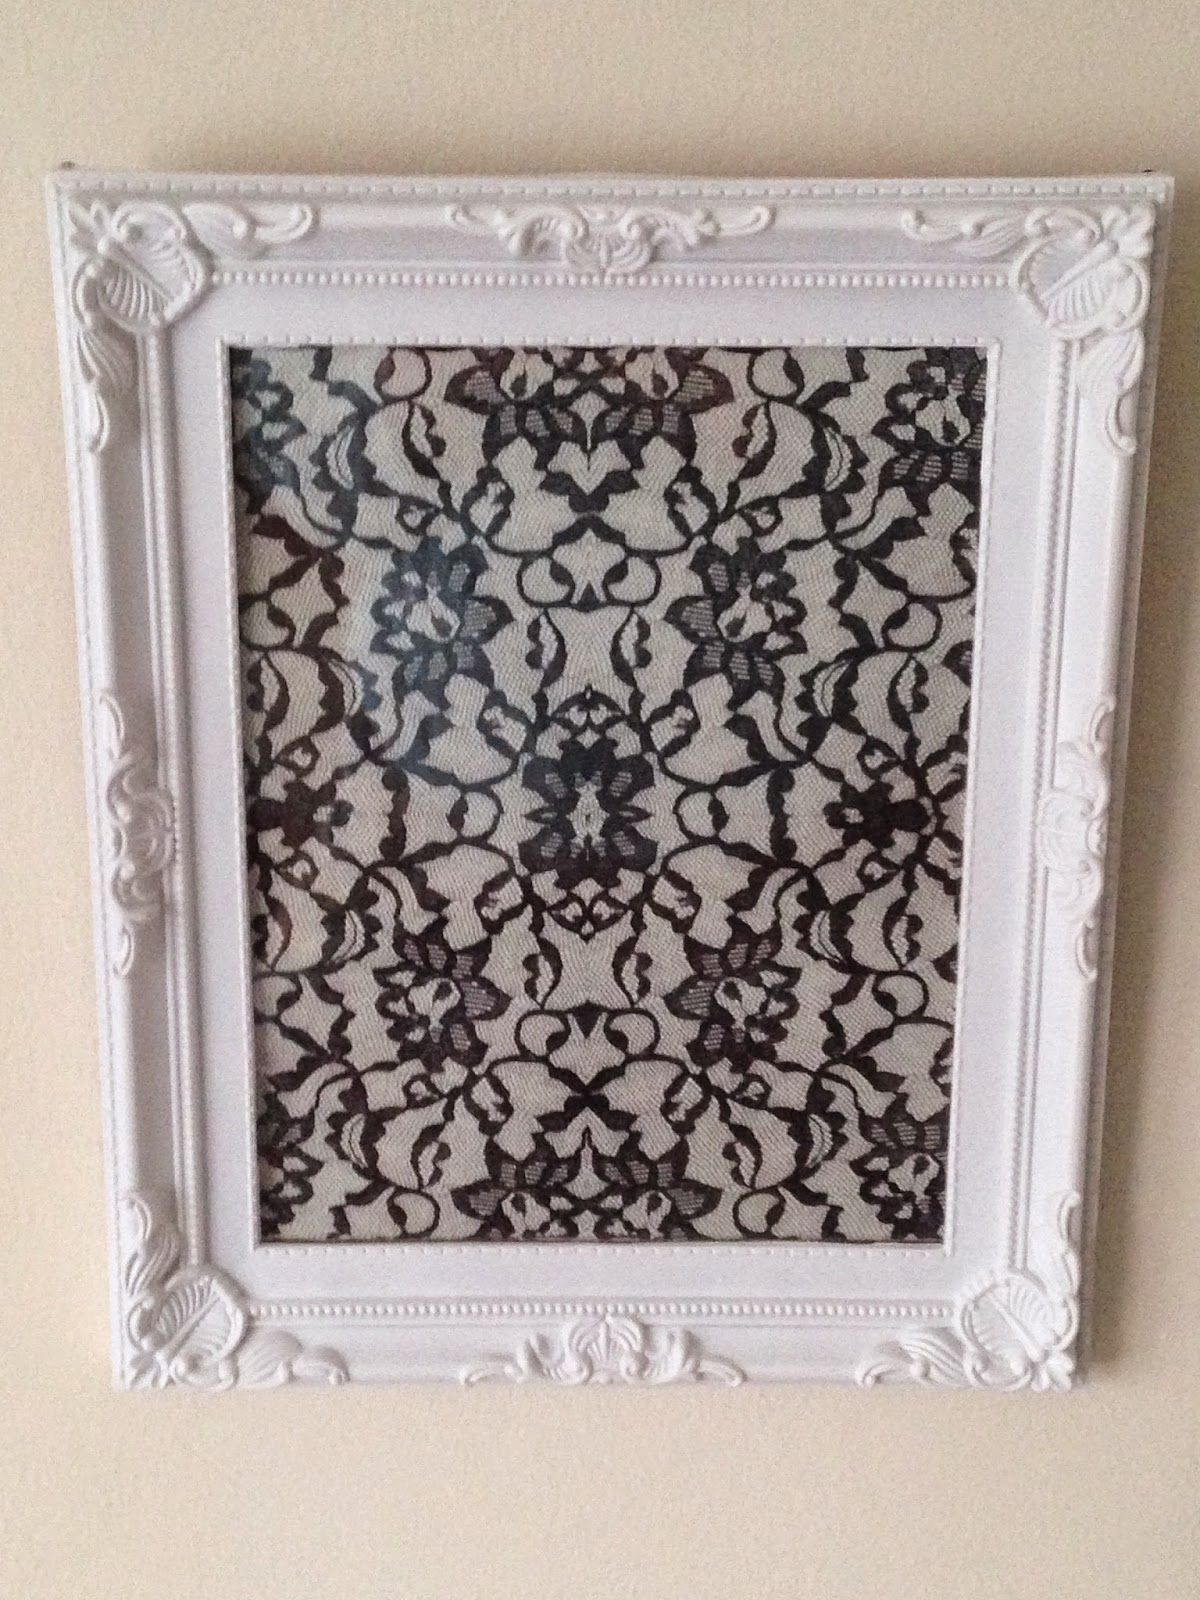 White apron poundland - Cheap Poundland Frame And The Best Part The Artwork Is A 1 Gift Bag